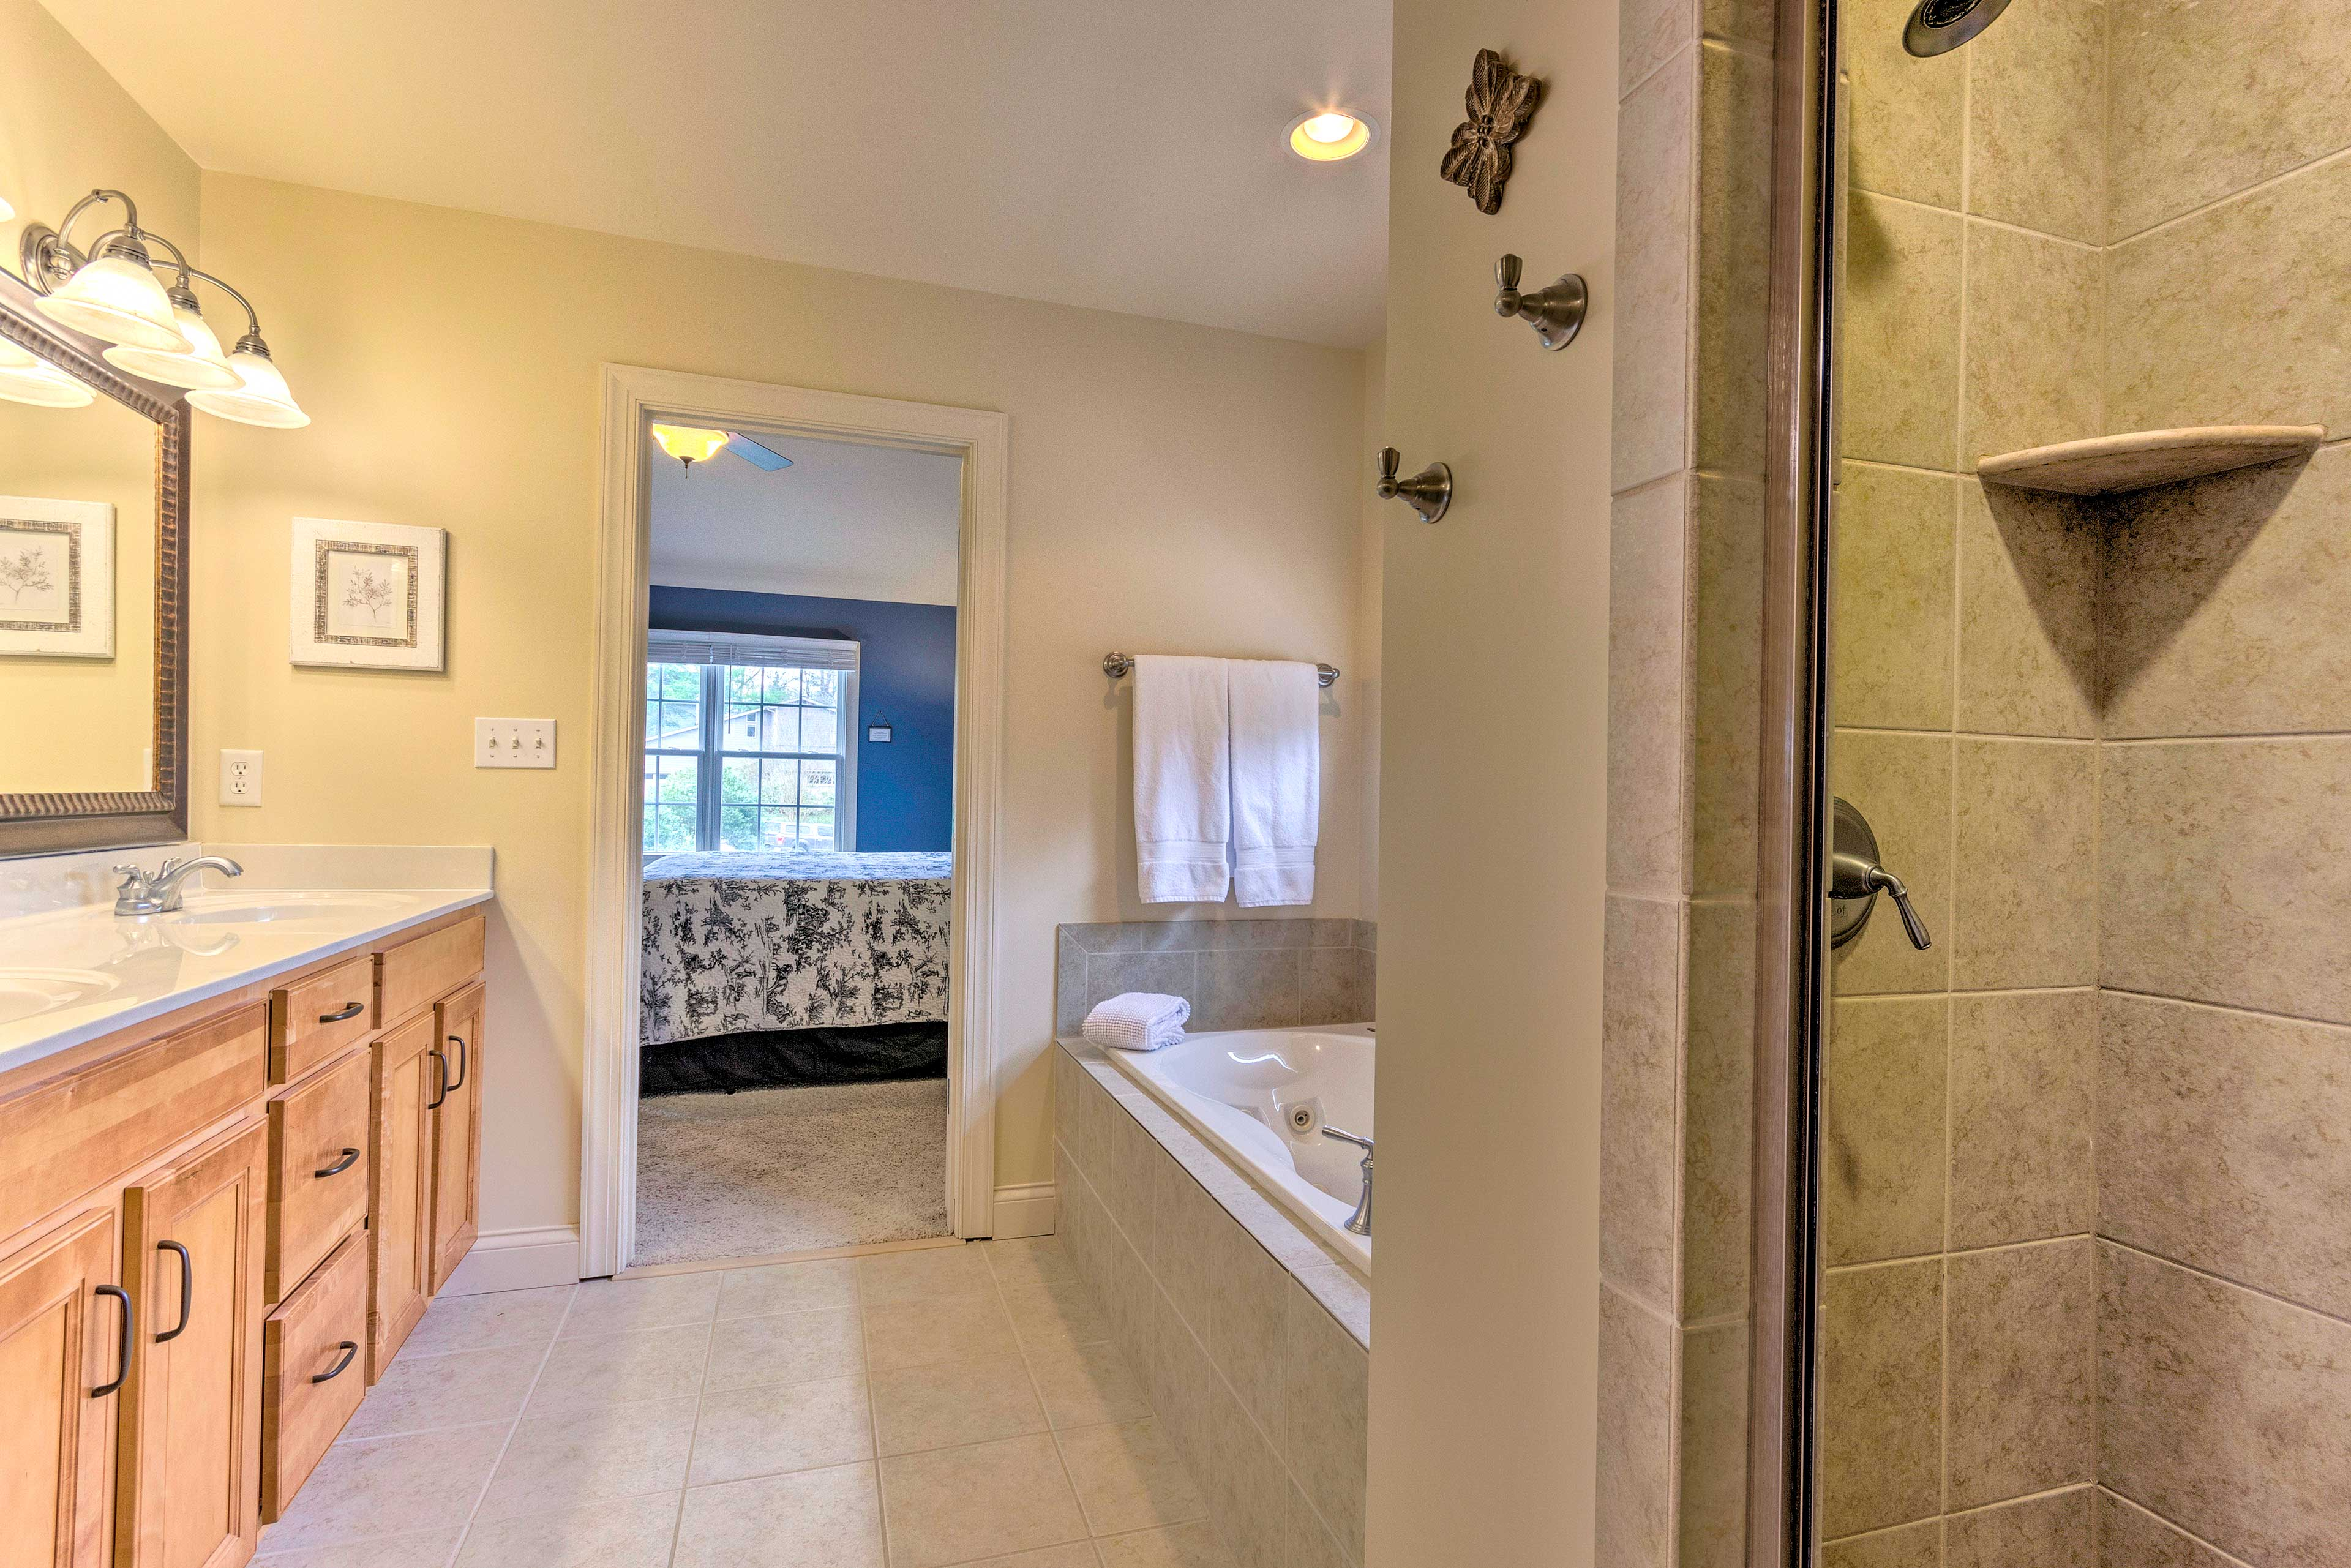 The master en-suite bathroom is equipped with a jetted tub and walk-in shower.